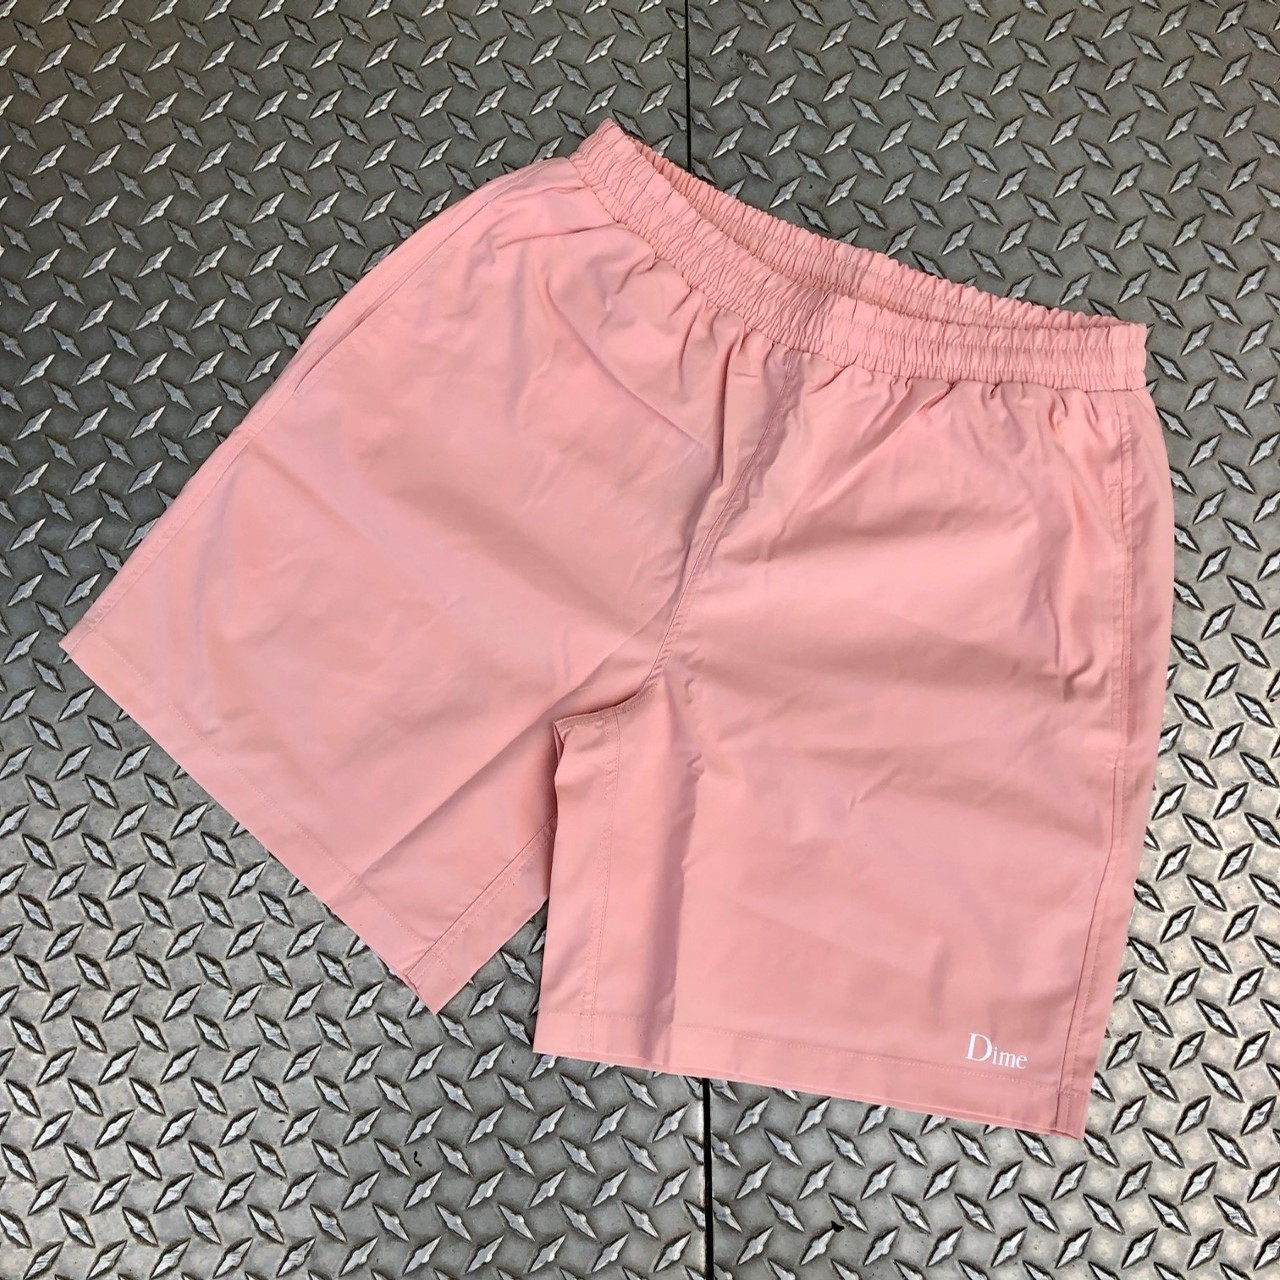 CLASSIC SHORTS (LIGHT PINK)